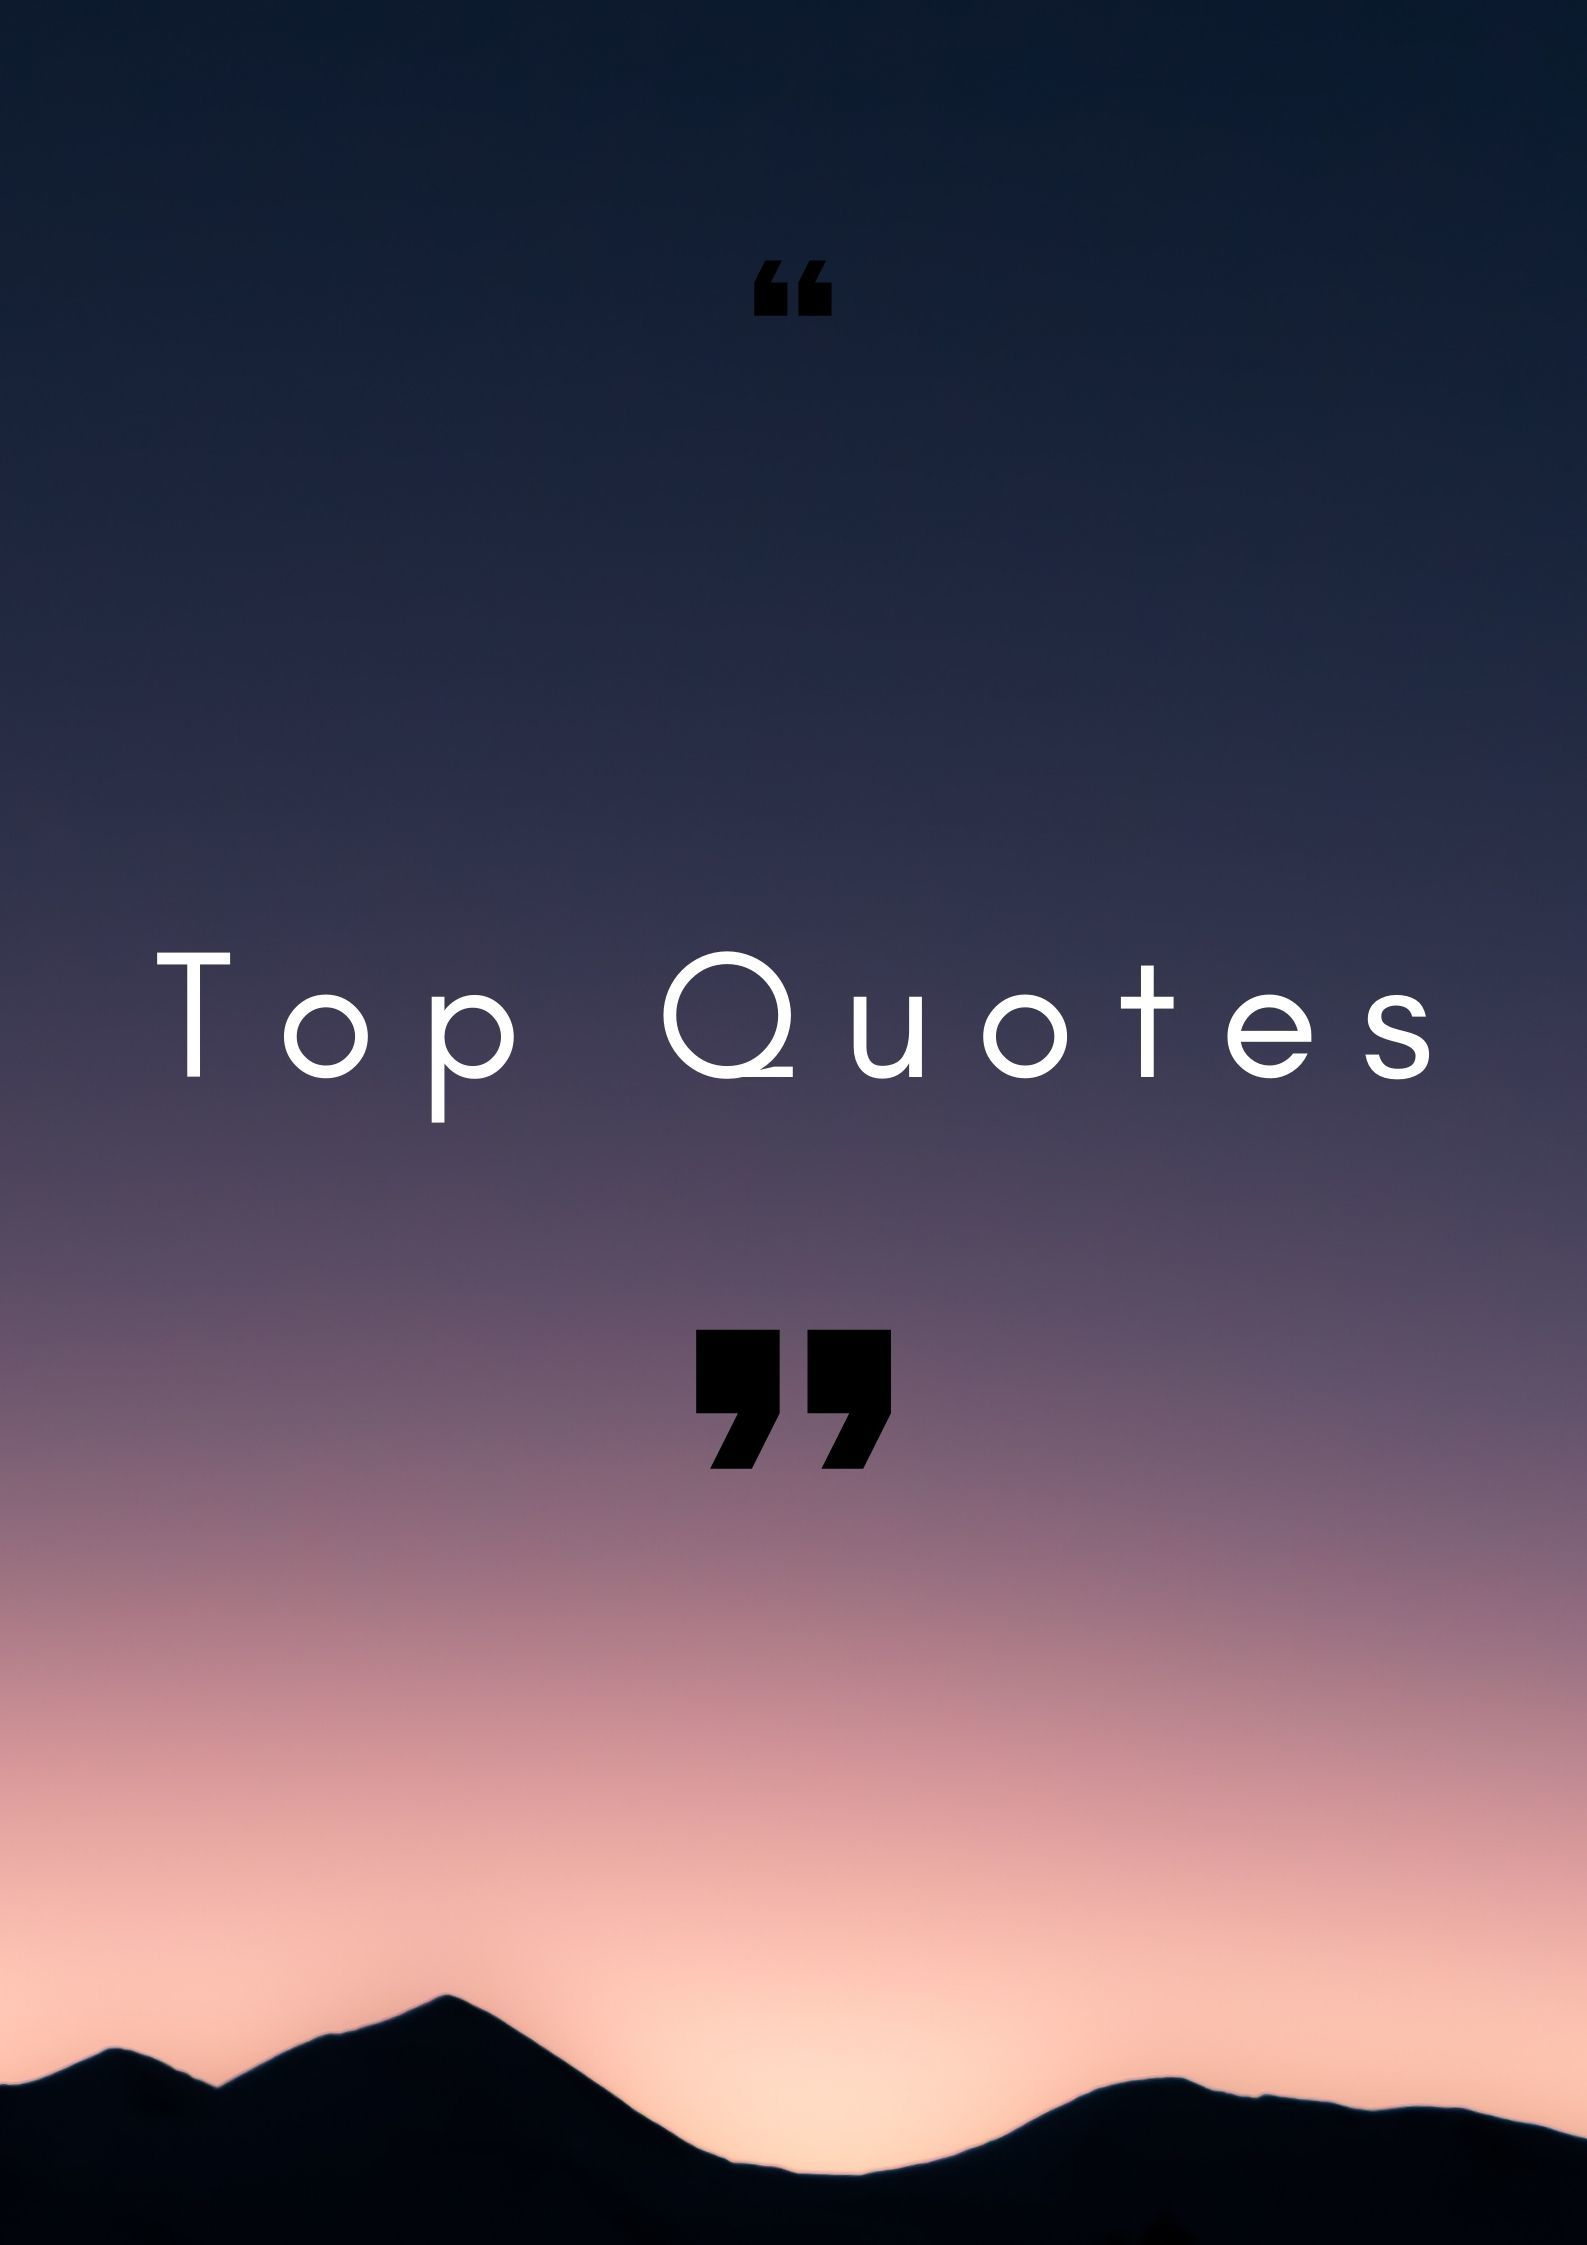 Top Quotes free image download